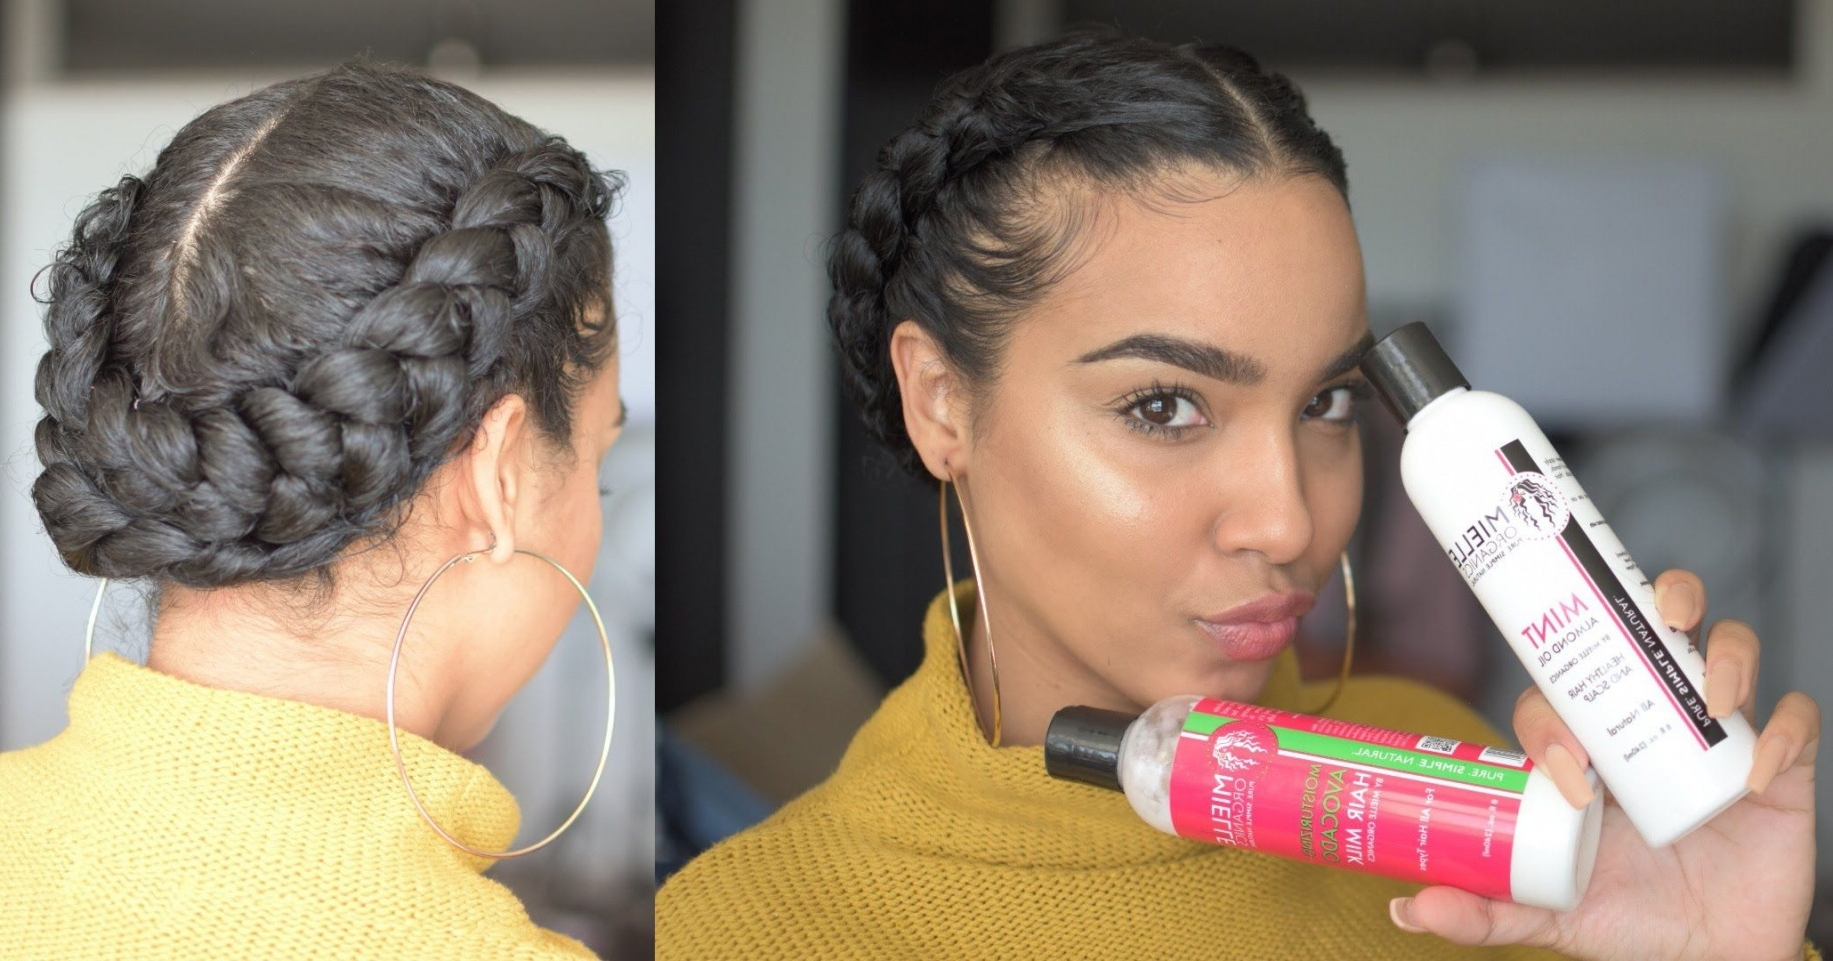 Shocking Quick Braided Hairstyles For Natural Hair Elegant And Easy With Regard To Most Up To Date Quick Braided Hairstyles For Medium Hair (View 15 of 15)